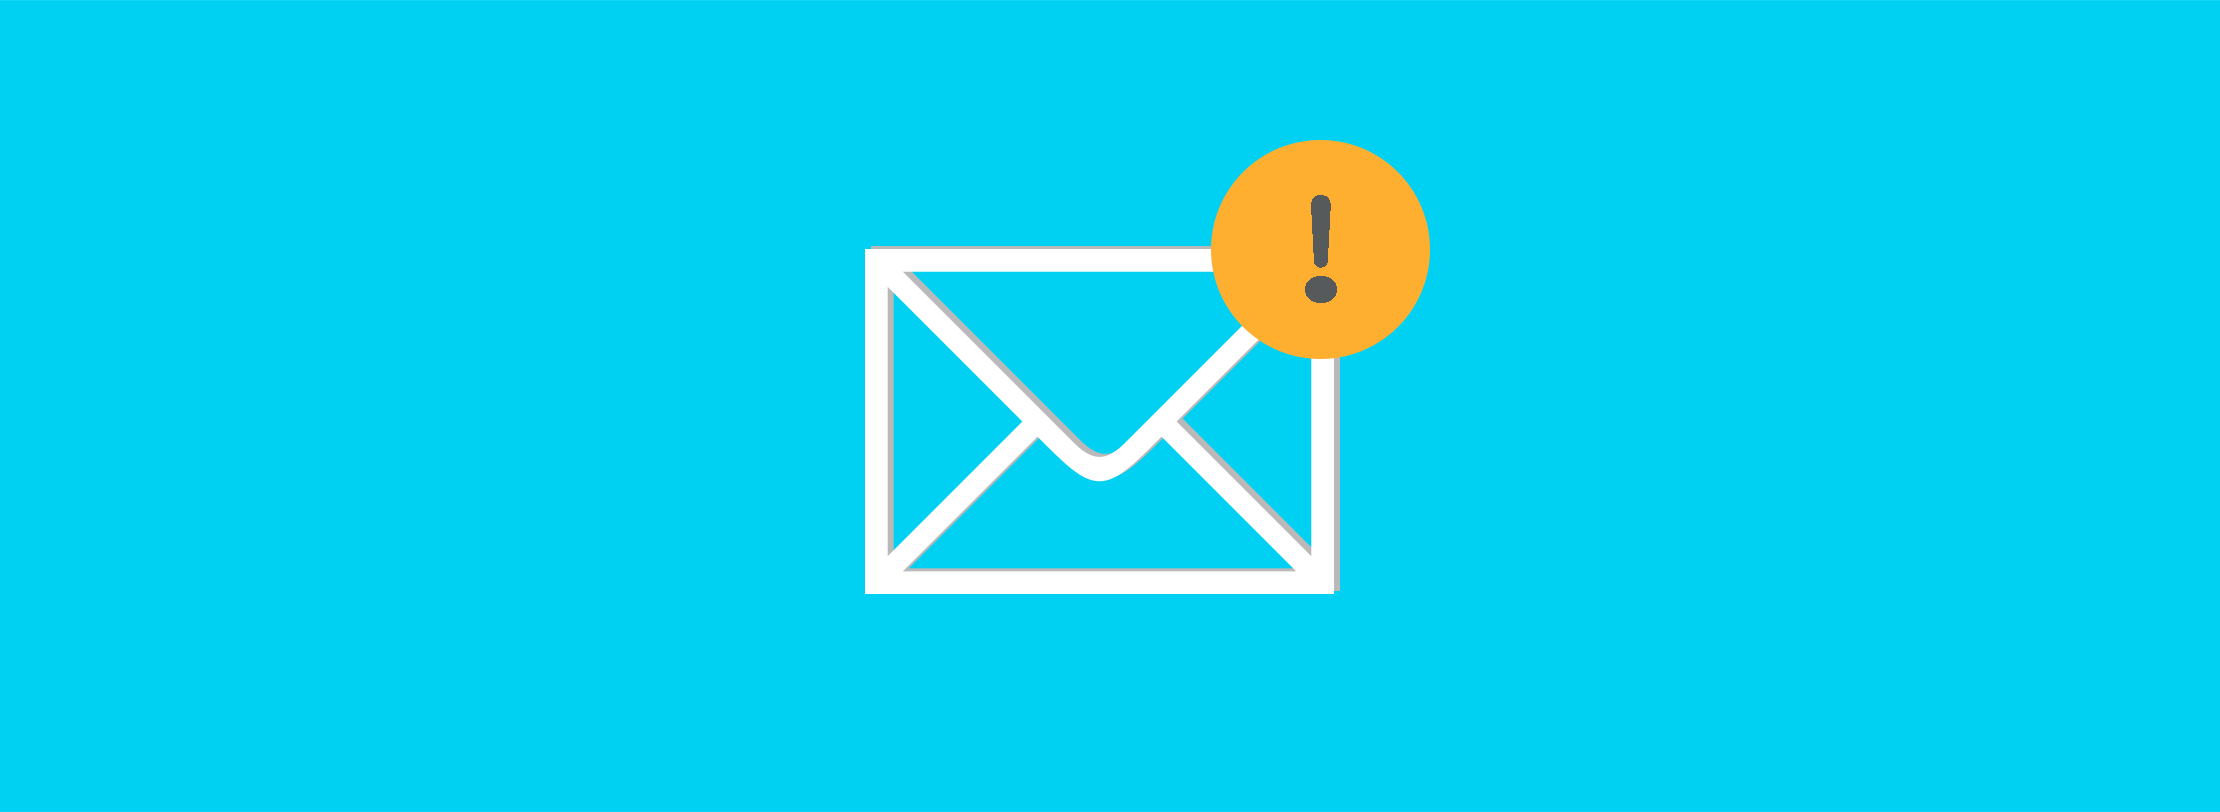 Press send to help secure email around the globe